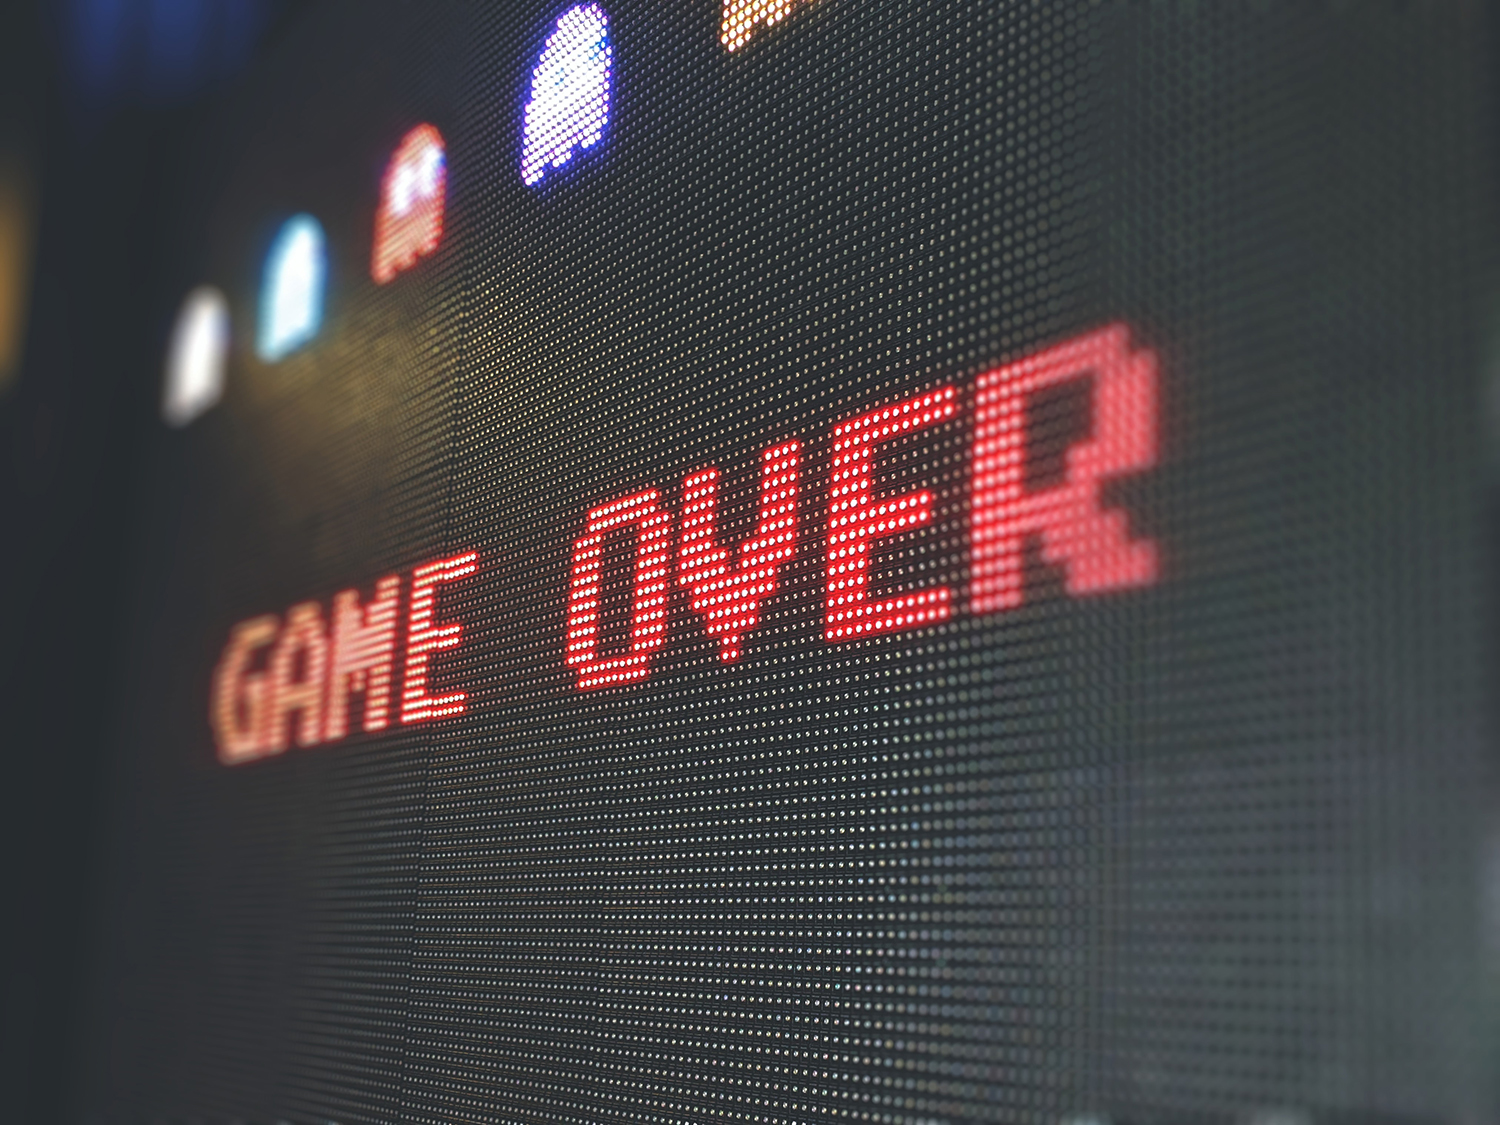 game over text from a video game representing cold calling killing sales